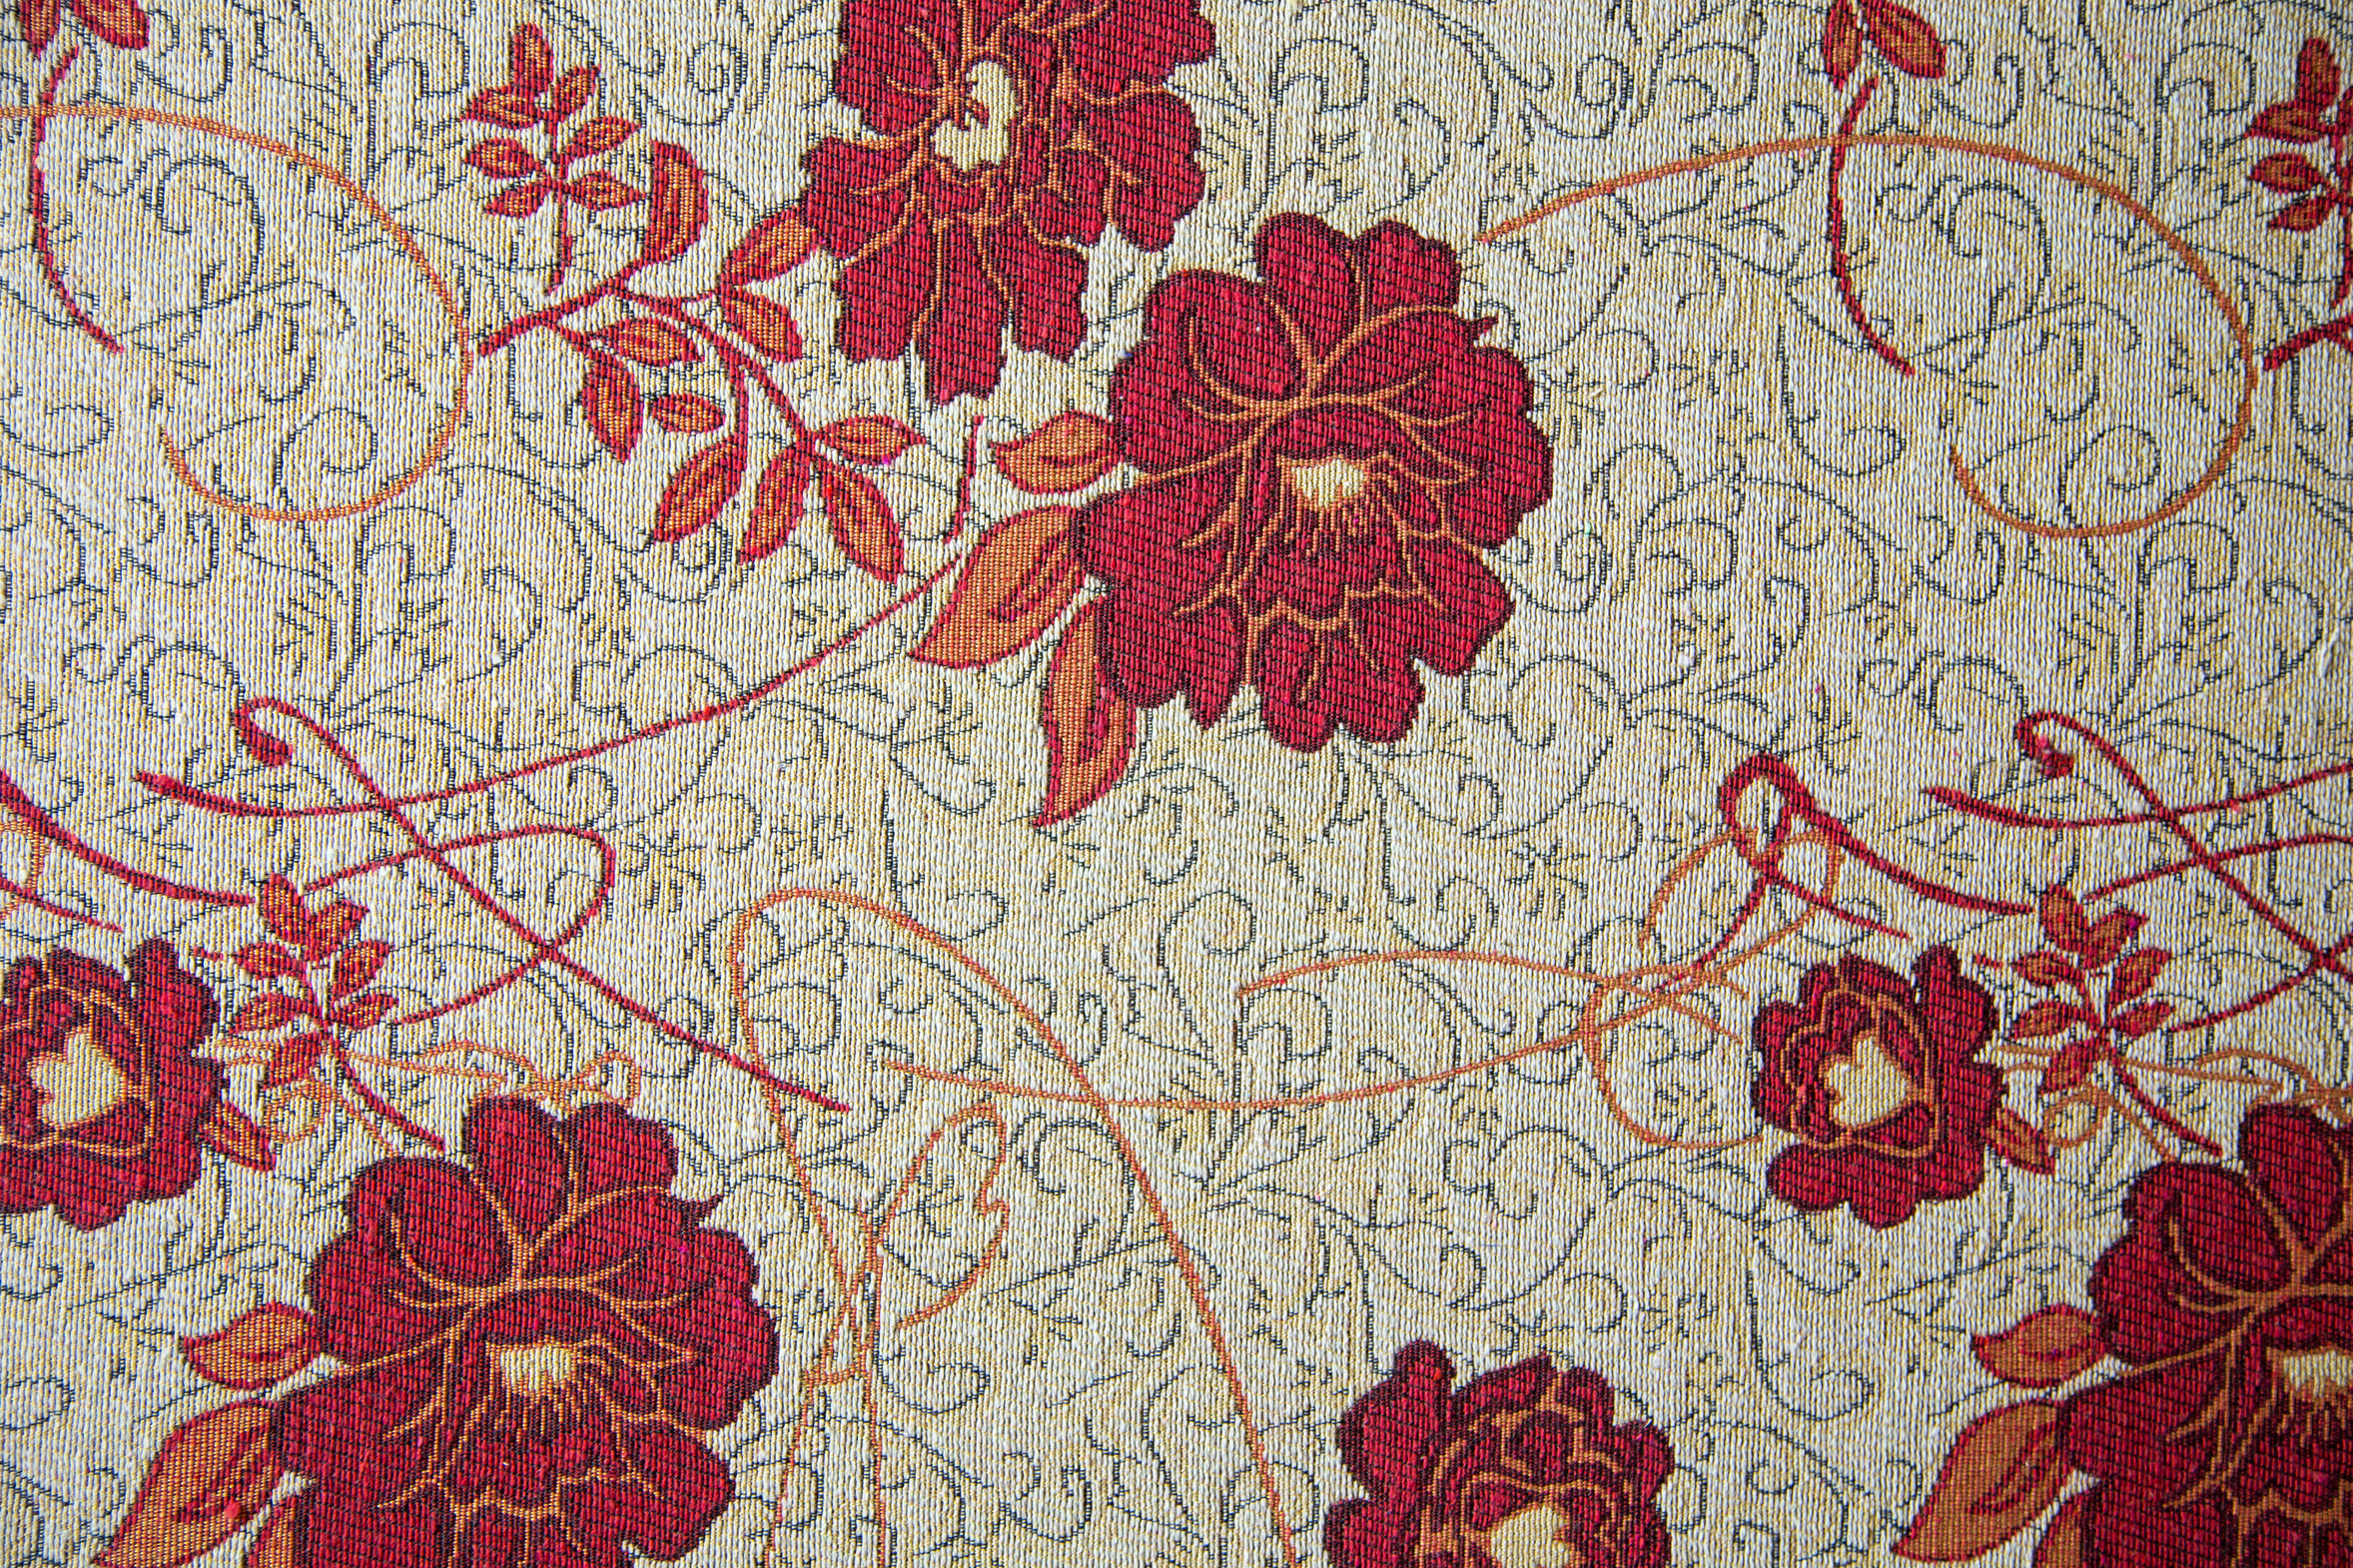 Vintage luxury flower fabric upholstery, texture background